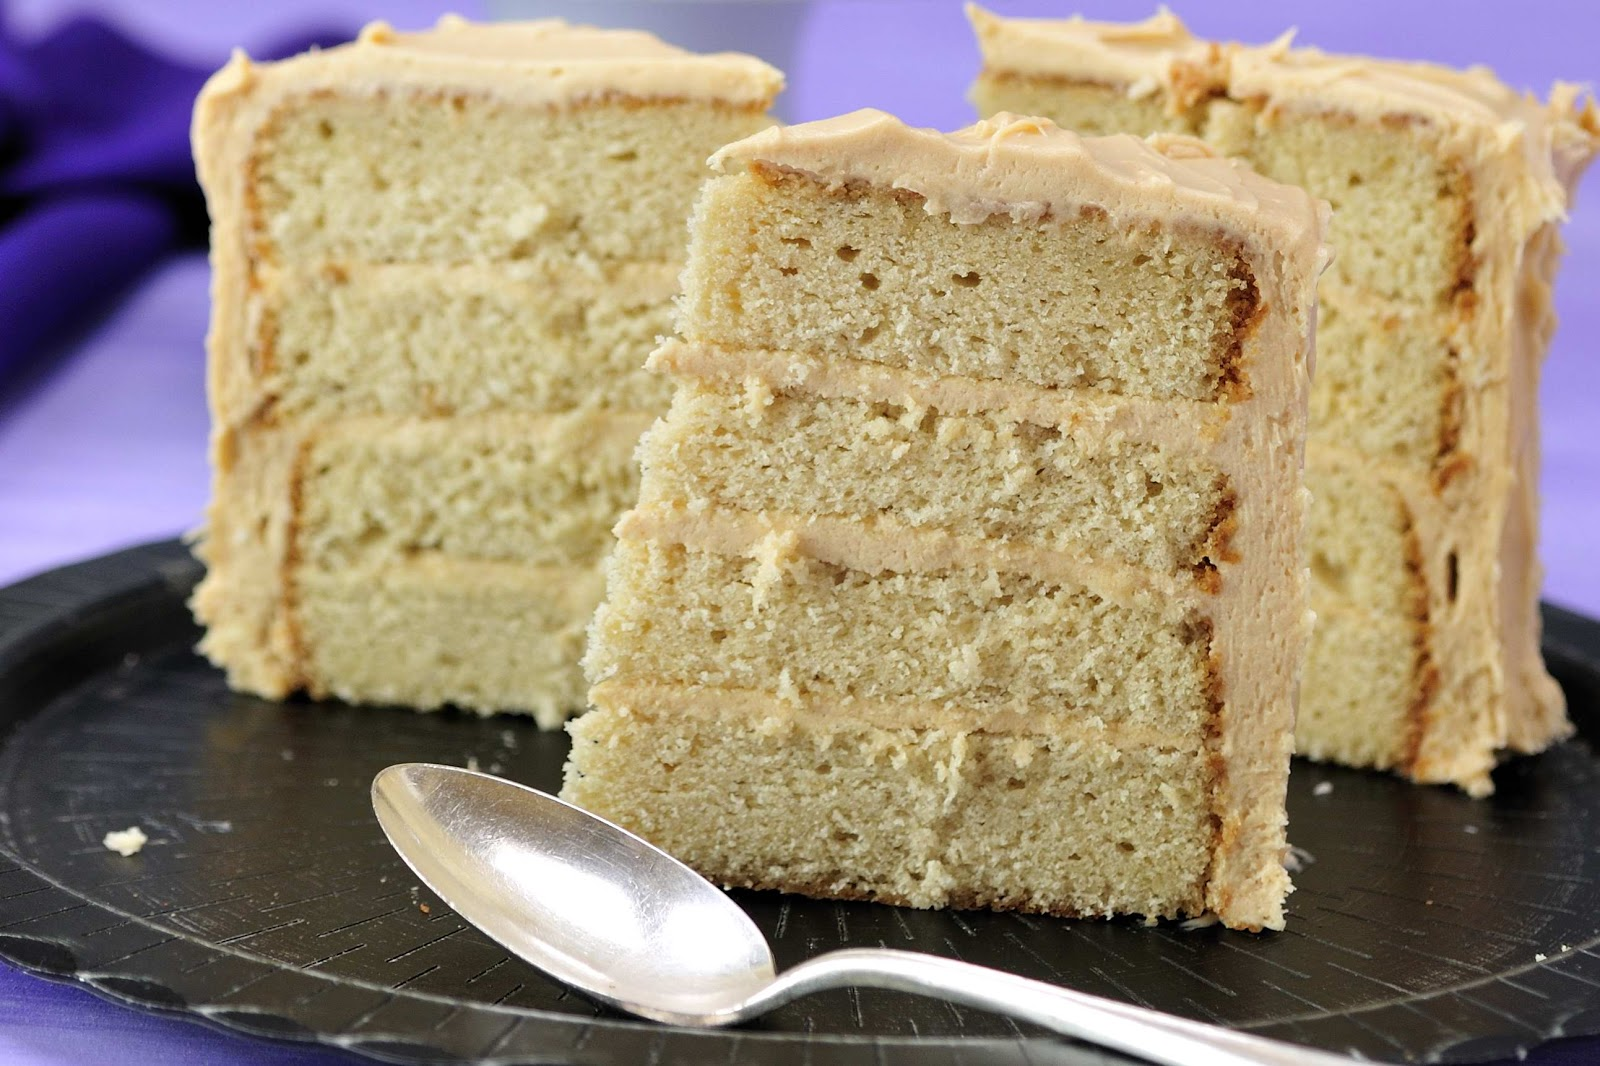 Cake Recipes With Icing Sugar: Haniela's: Brown Sugar Cake With Cream Cheese Caramel Frosting